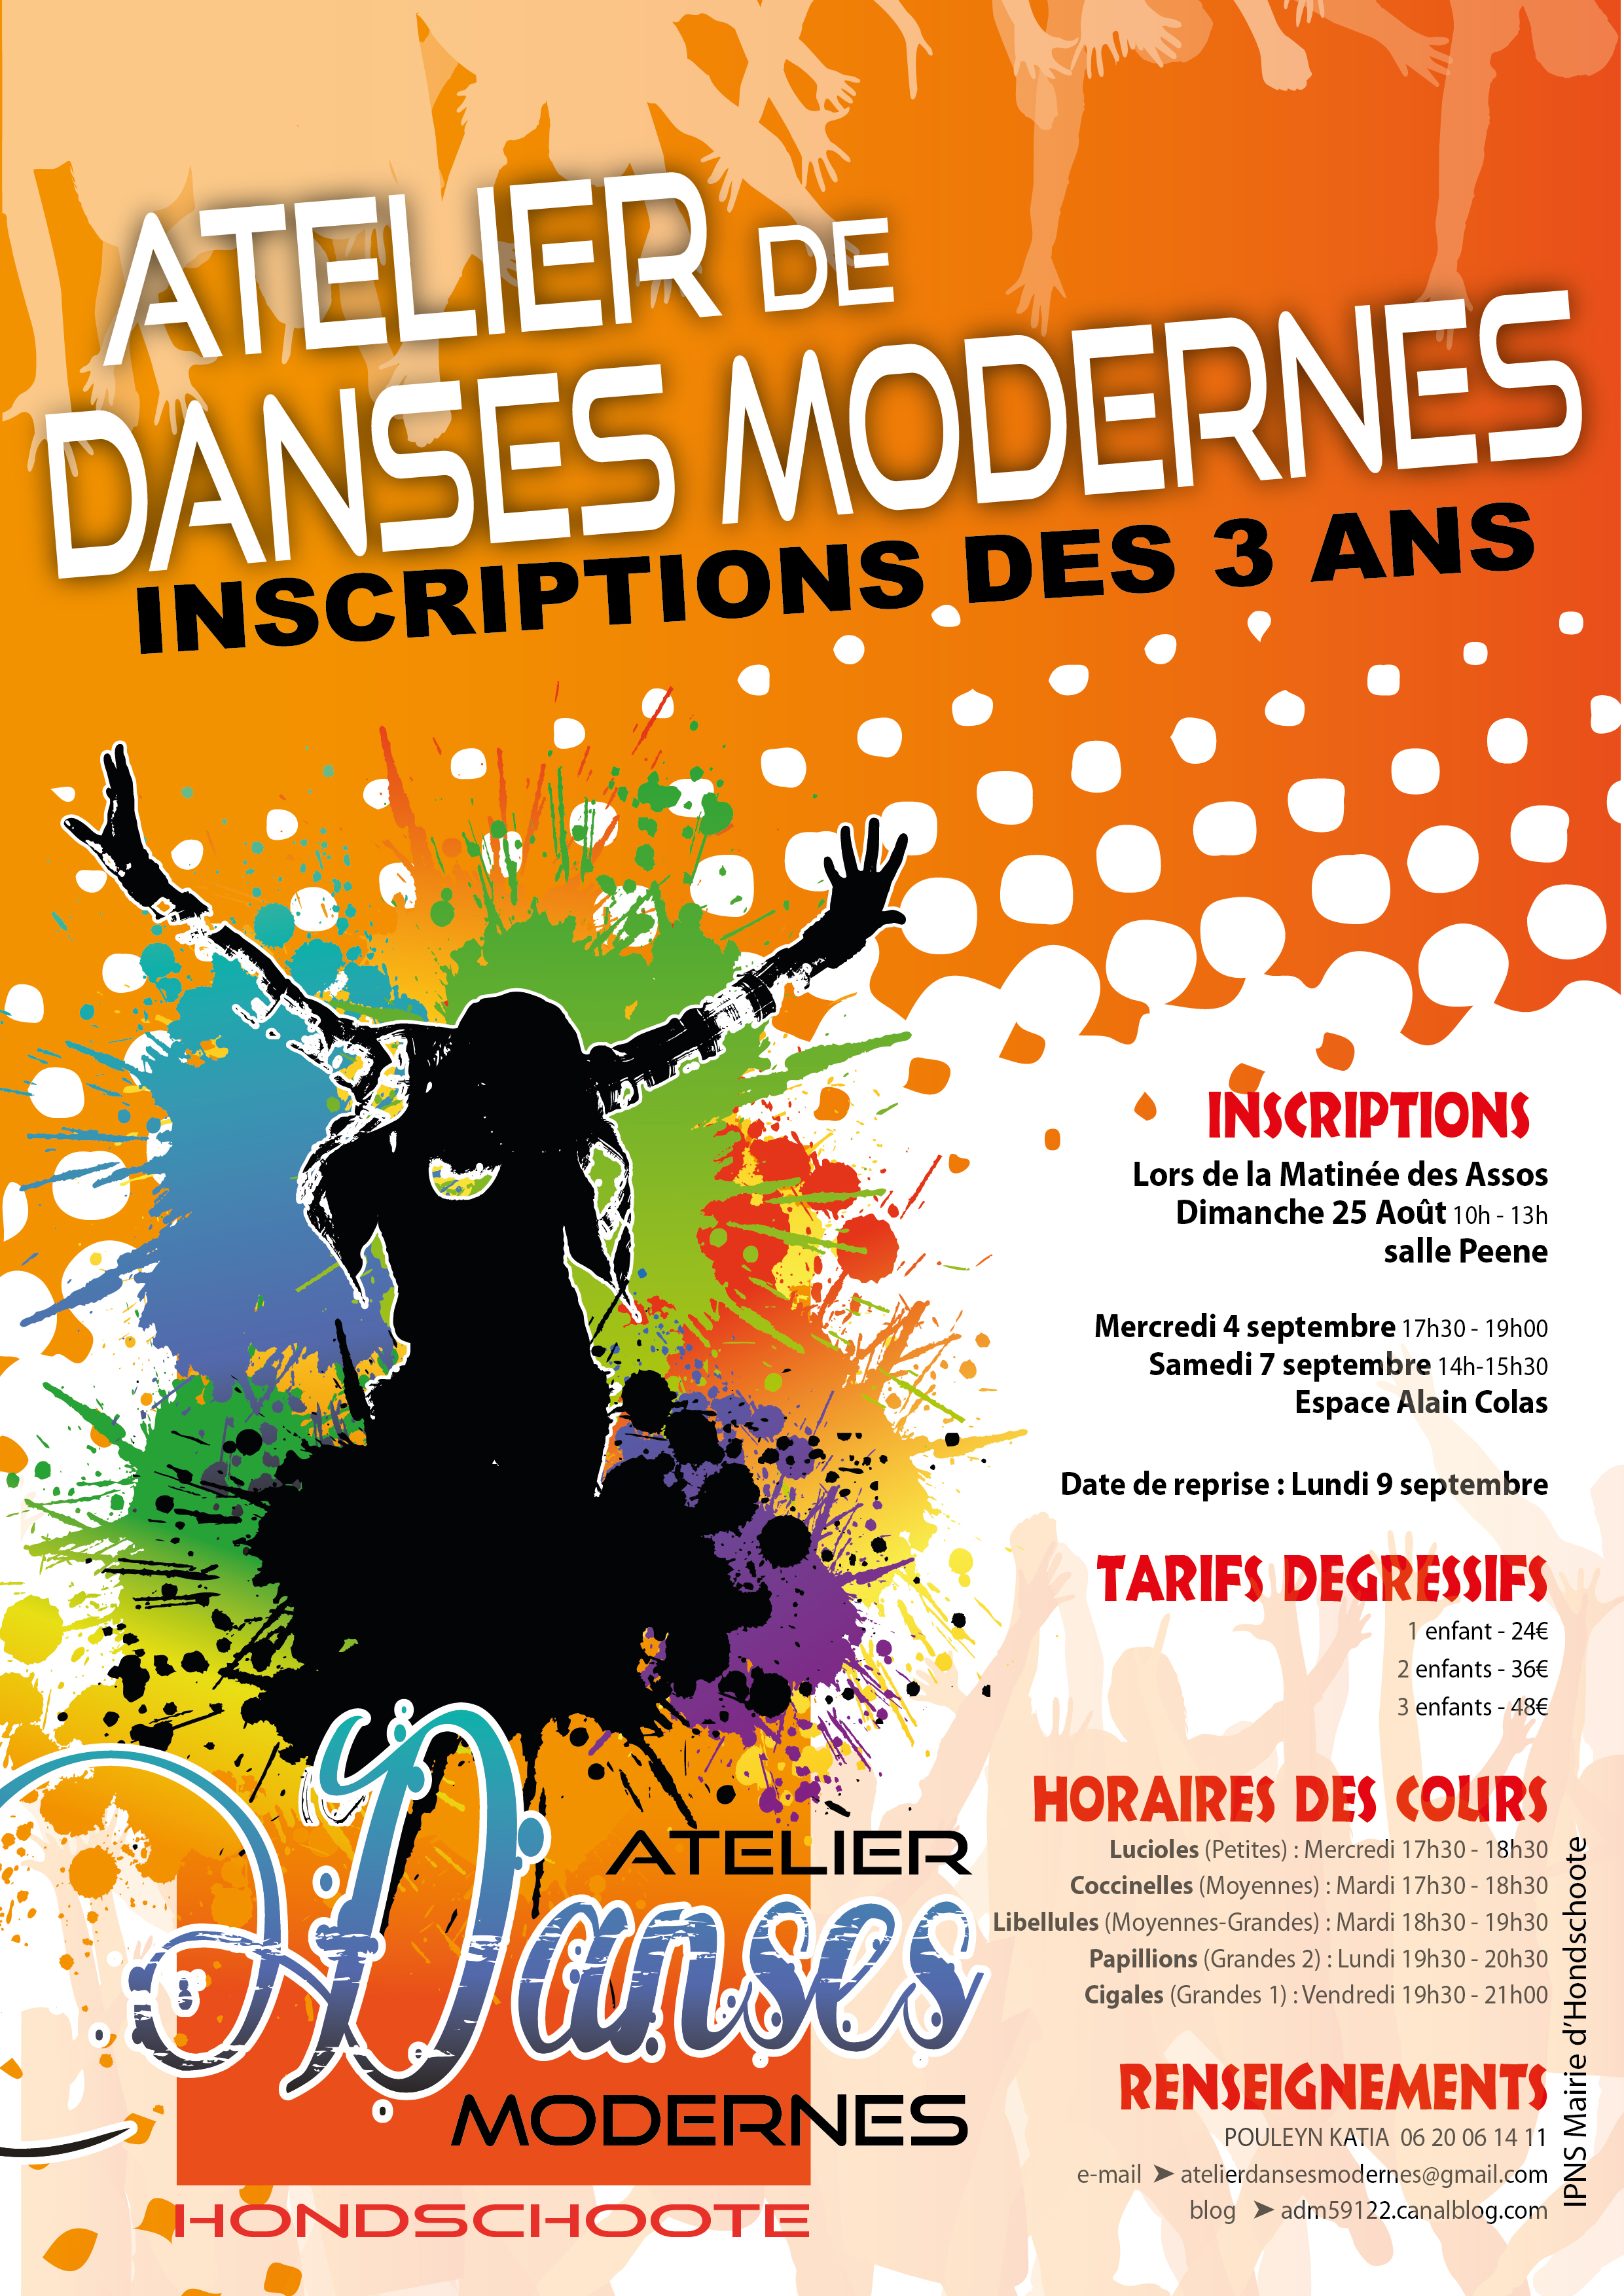 atelier_danse_inscrip._aff_plan_de_travail_1_copie.jpg